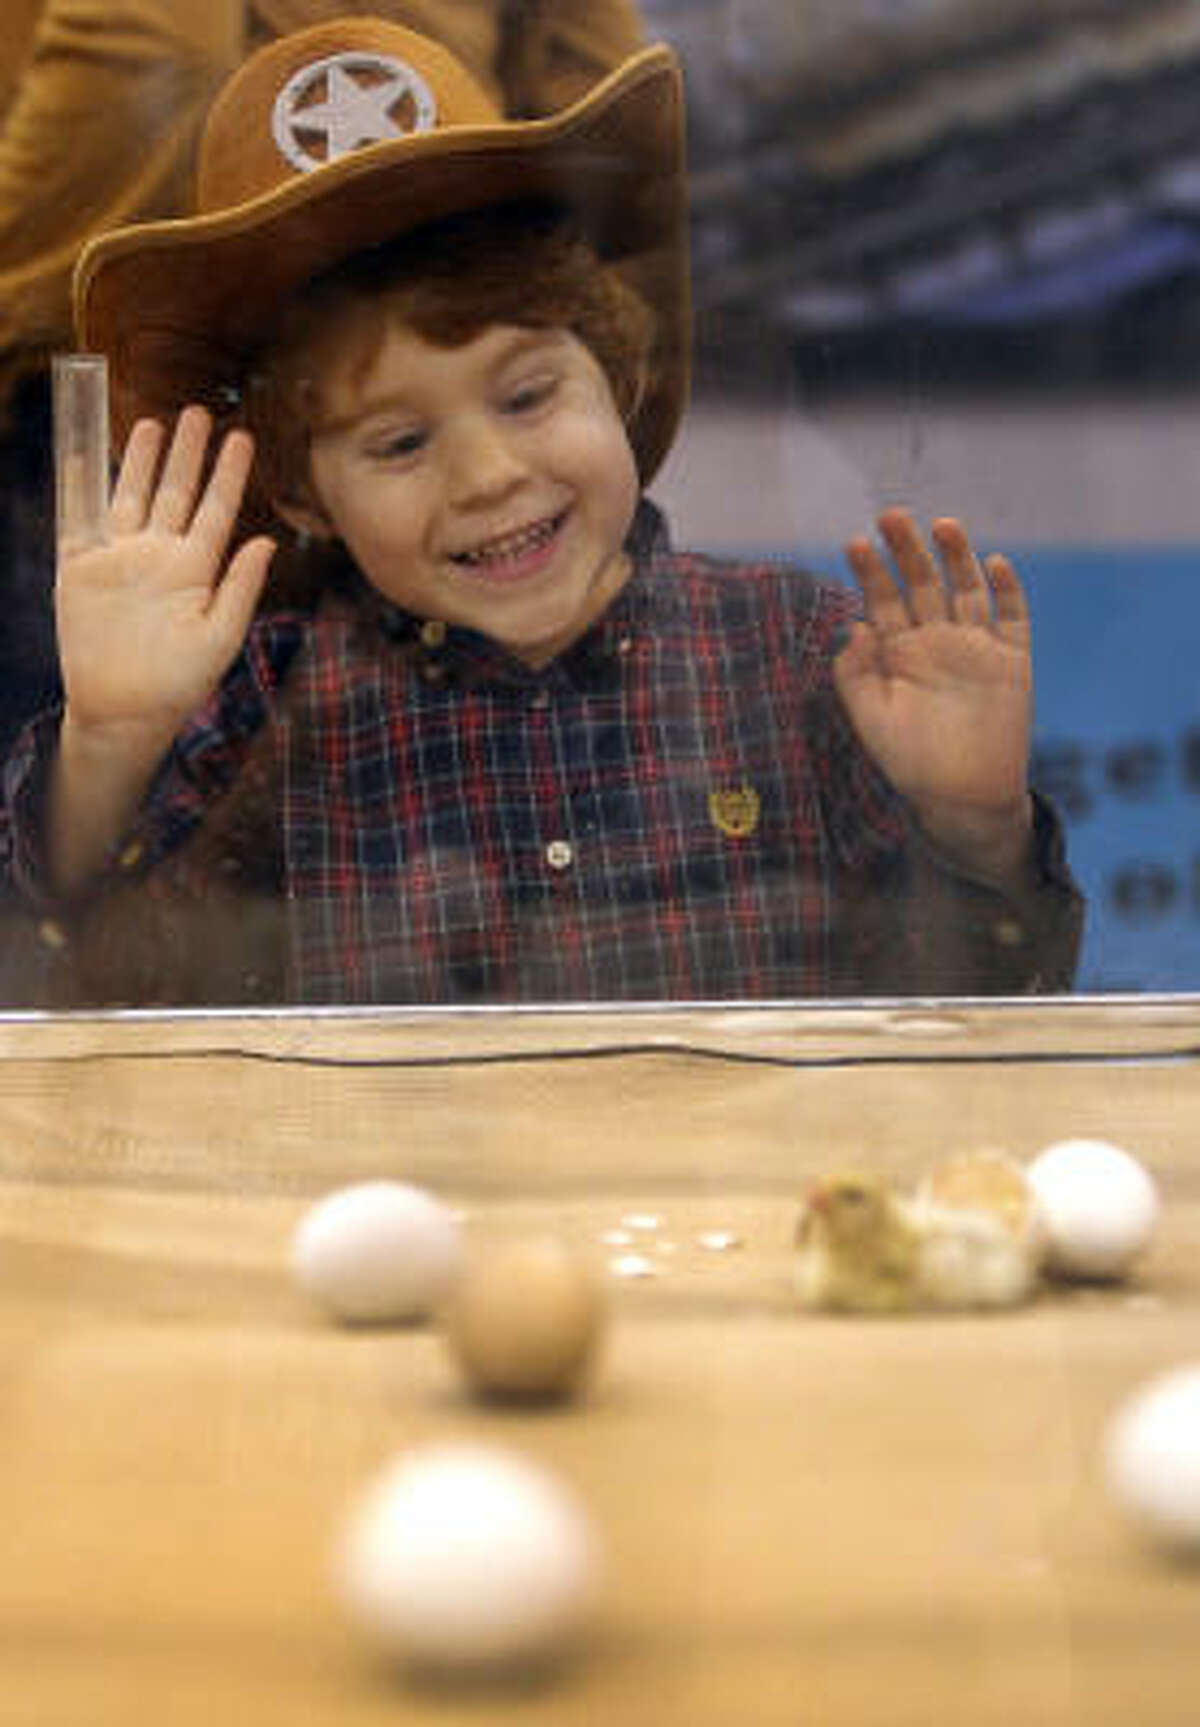 Jack Lopez, 3, League City, watches a newly hatched chick in the AGventure area of Reliant Center during Houston Livestock Show and Rodeo Monday, March 14, 2011, in Houston.